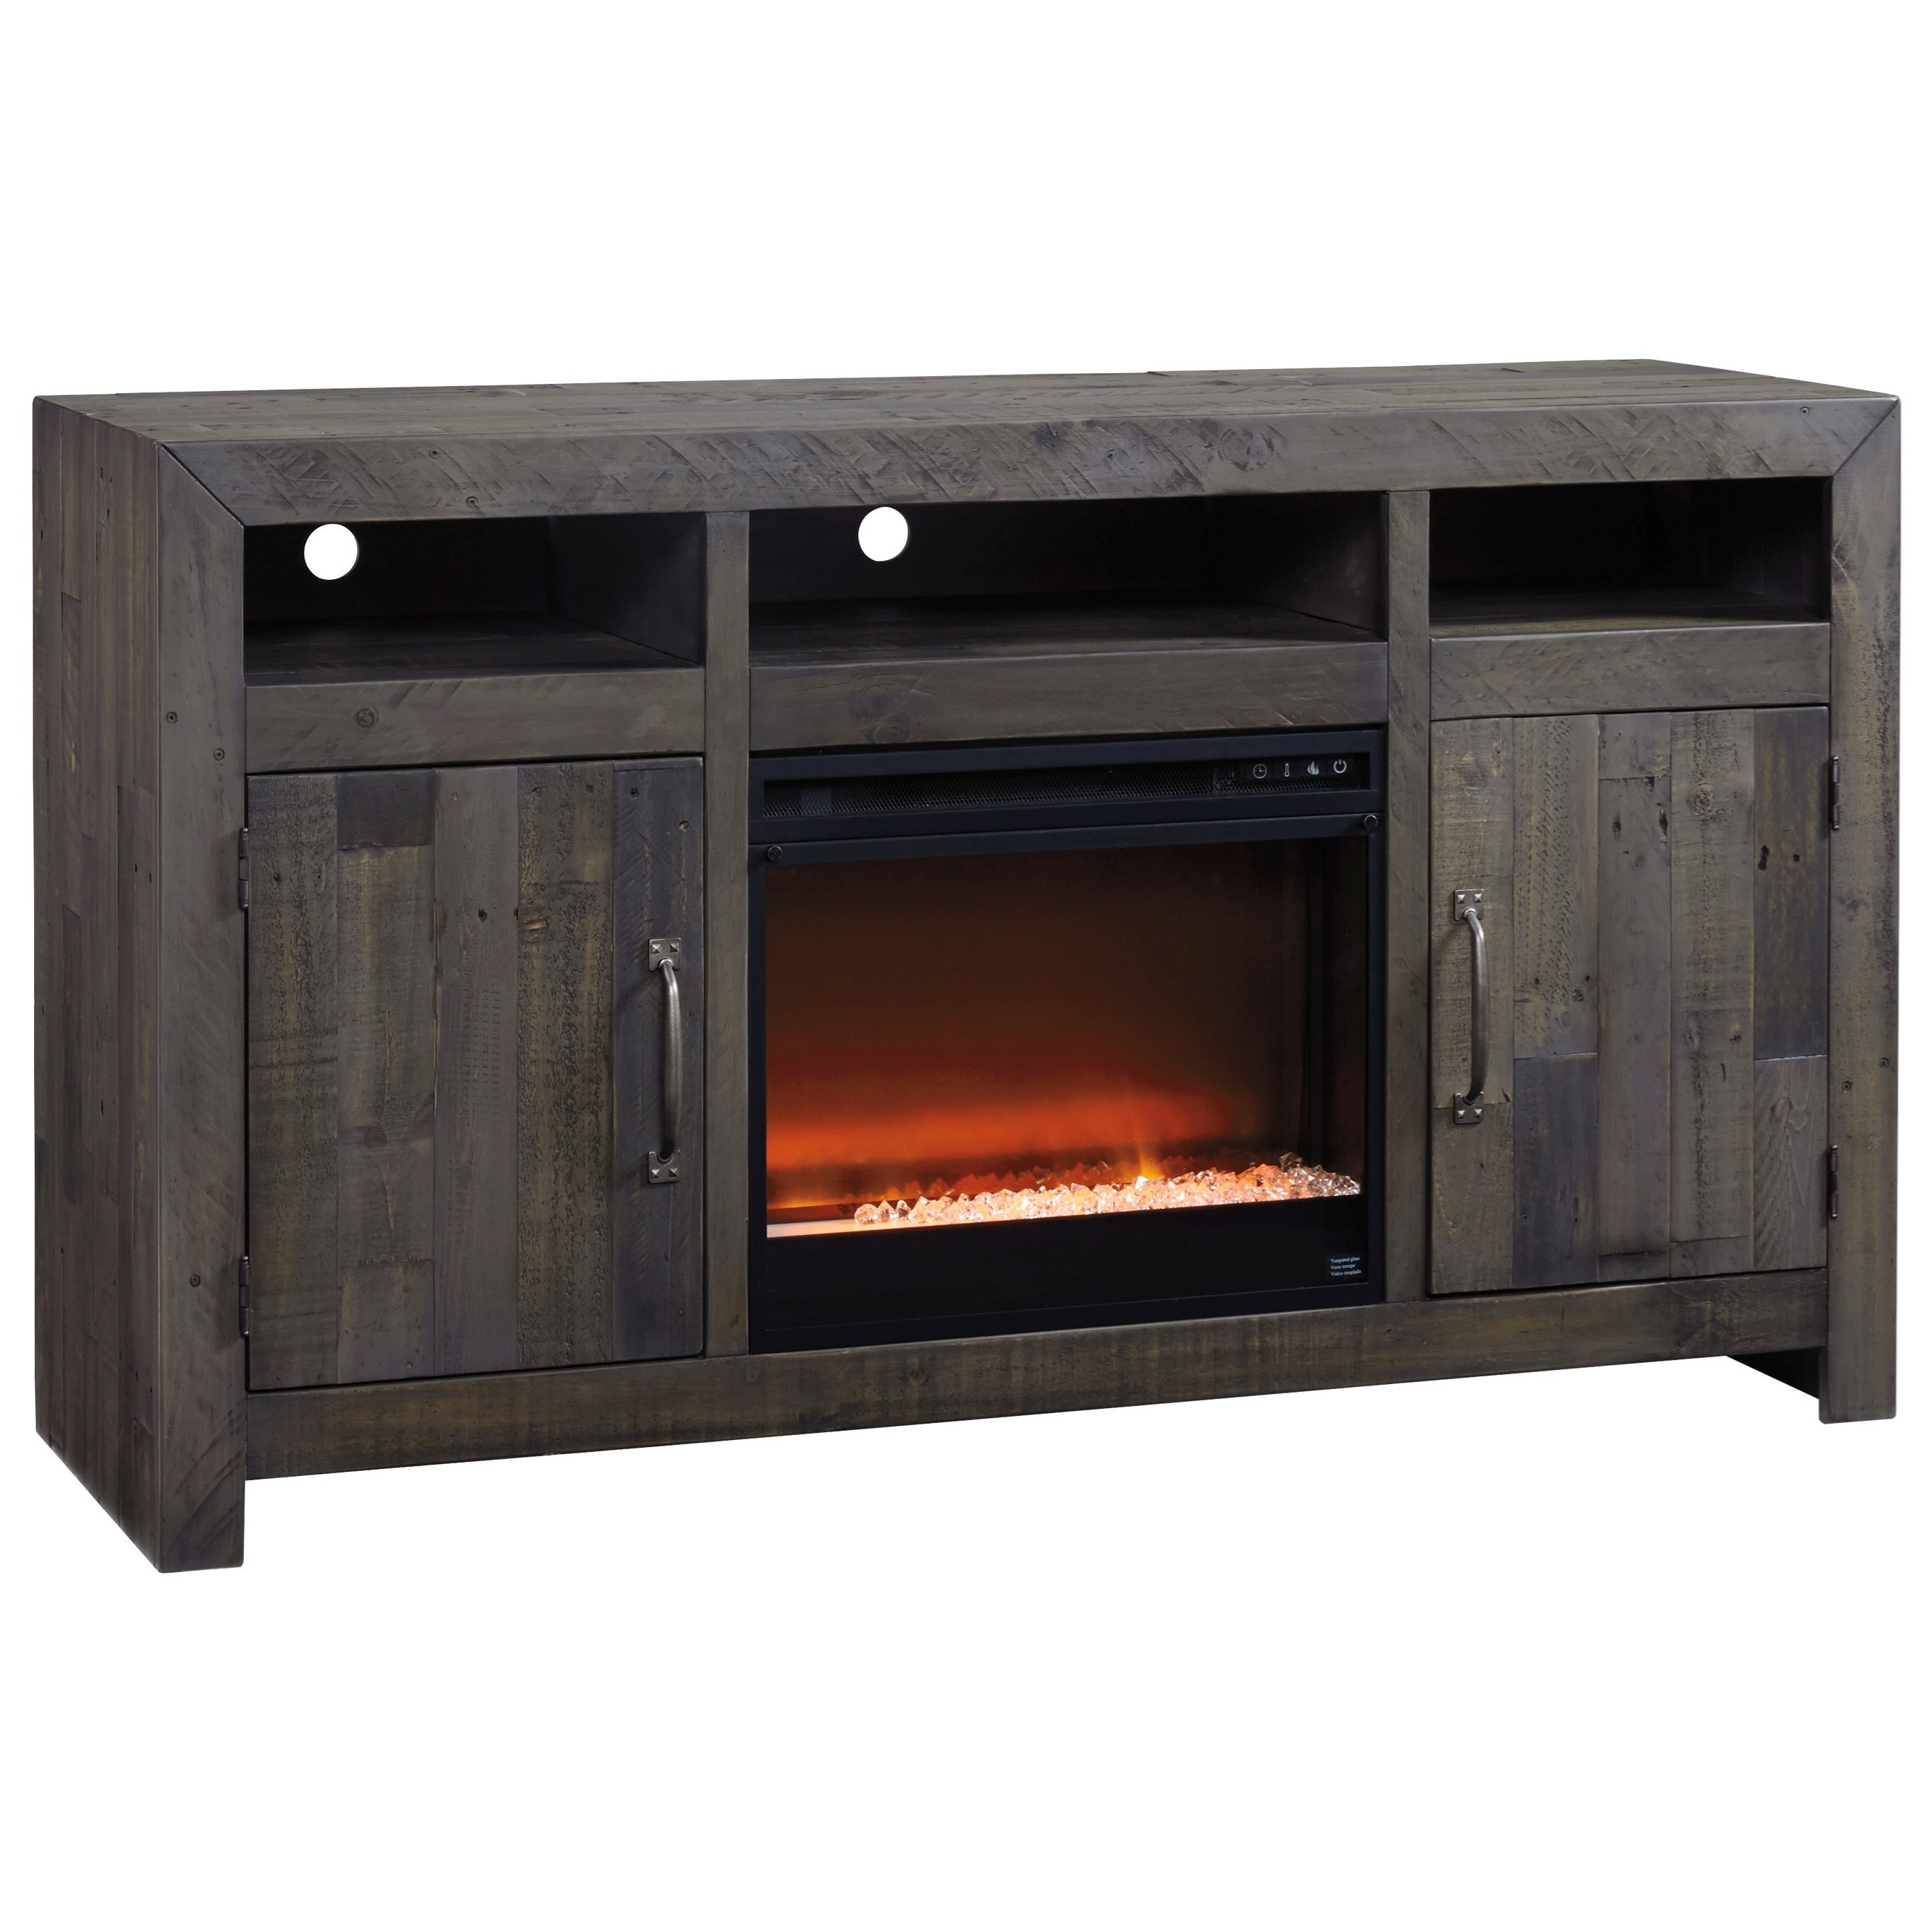 Mayflyn Large TV Stand with Fireplace Insert by Signature Design by Ashley at Household Furniture